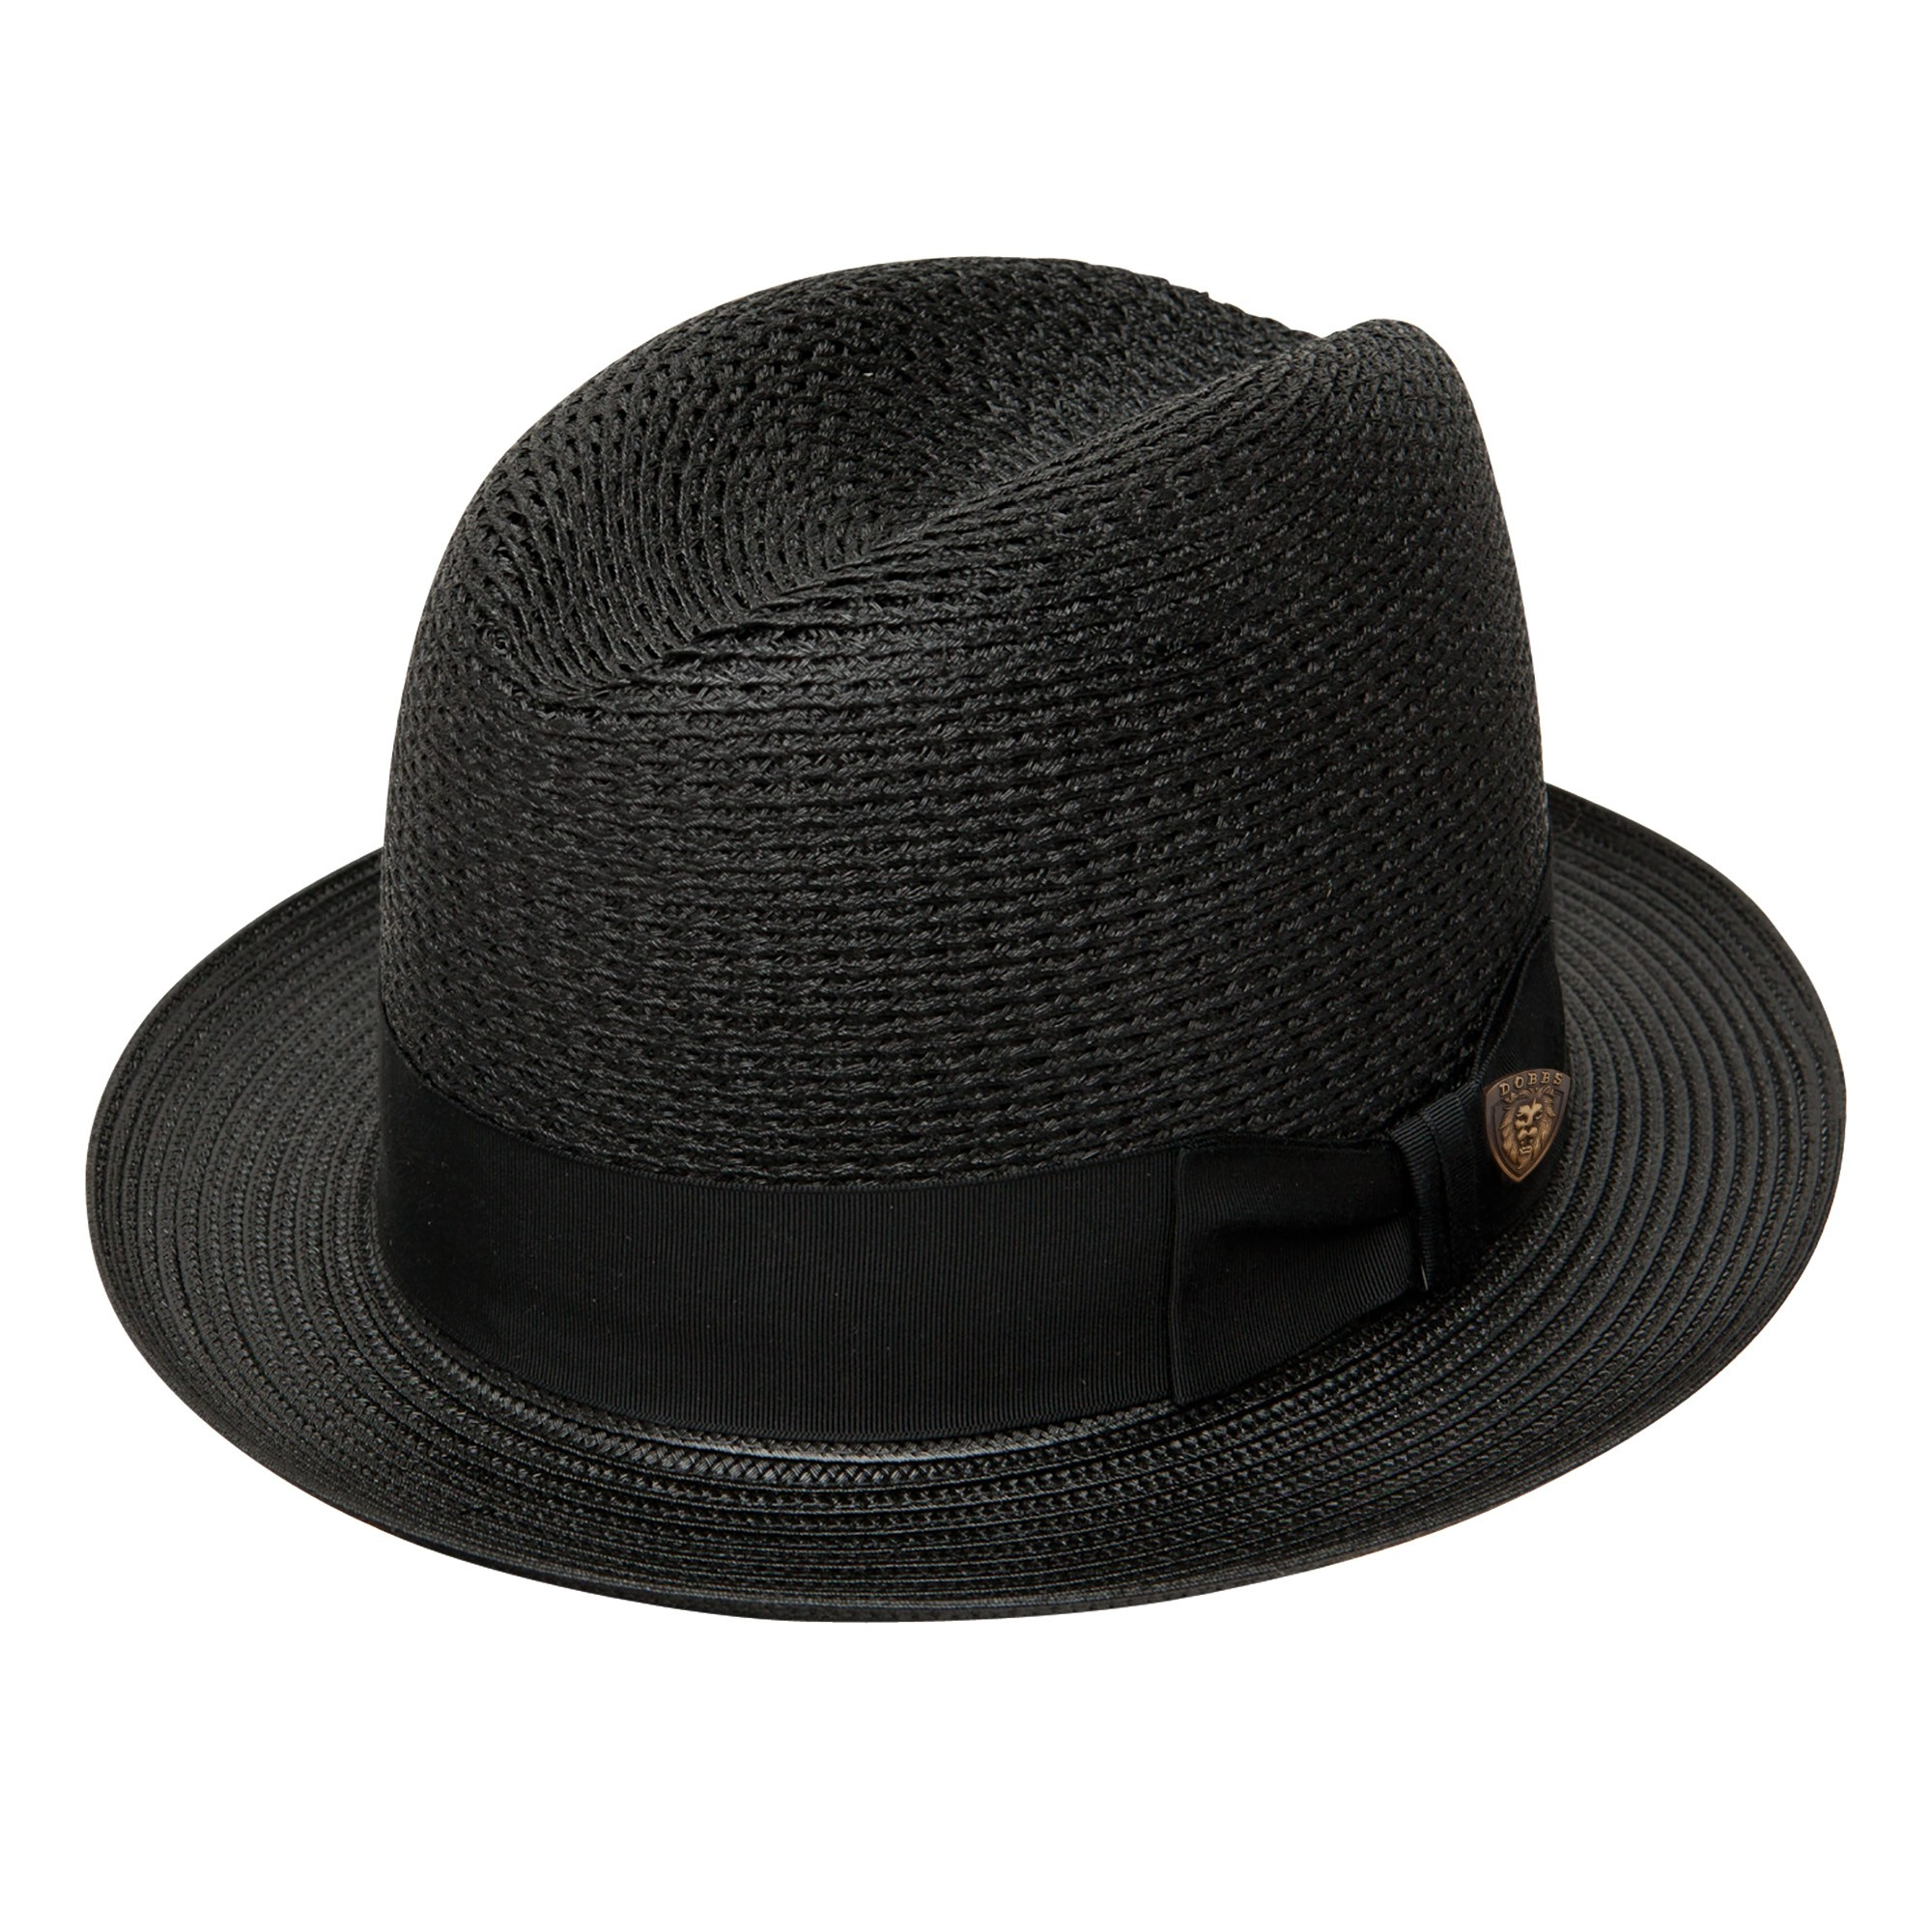 how to clean a fedora